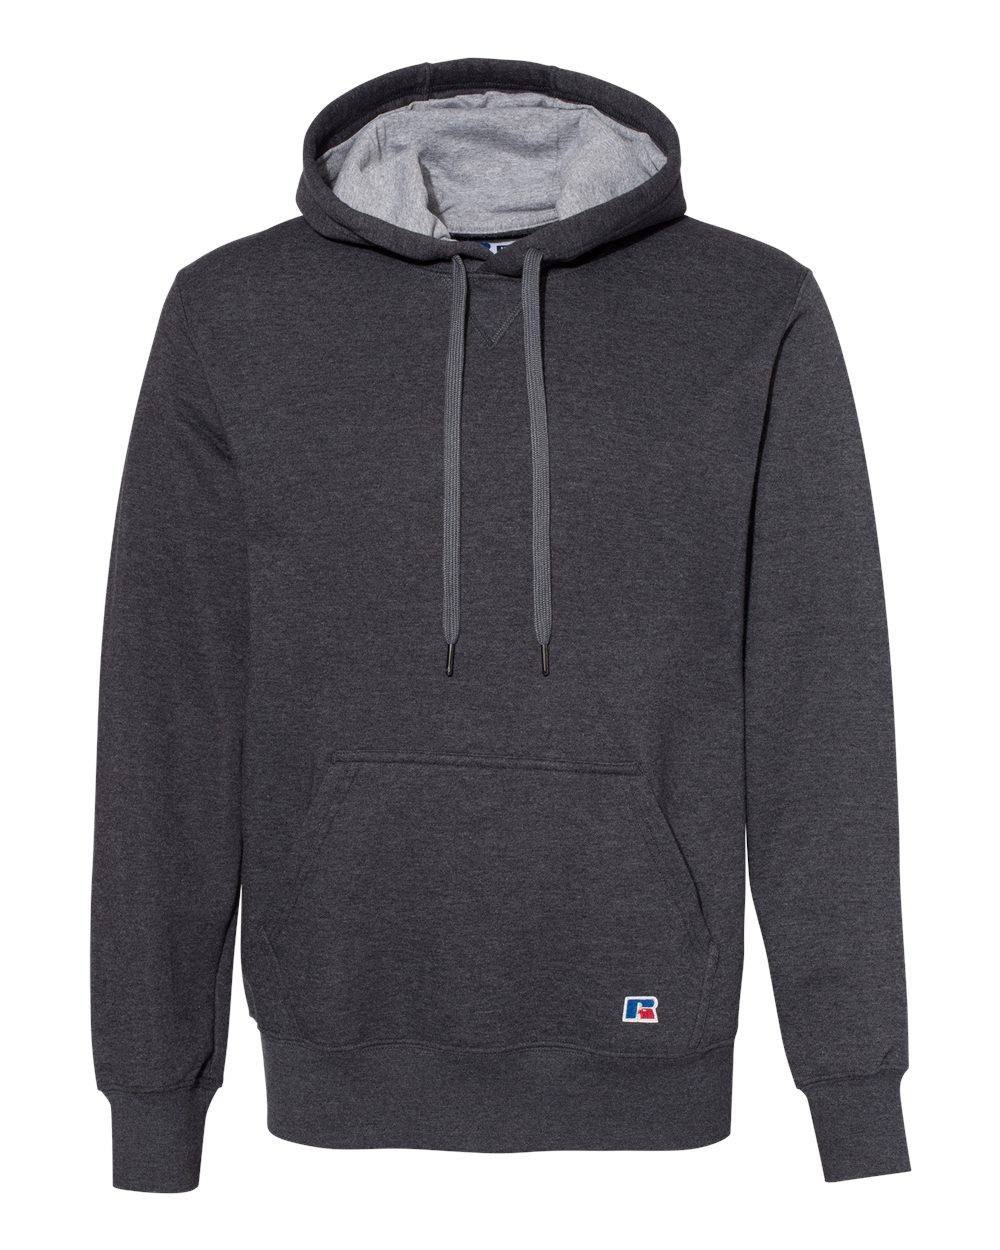 Russell-Athletic-Mens-Cotton-Rich-Fleece-Hooded-Sweatshirt-82ONSM-up-to-3XL miniature 12